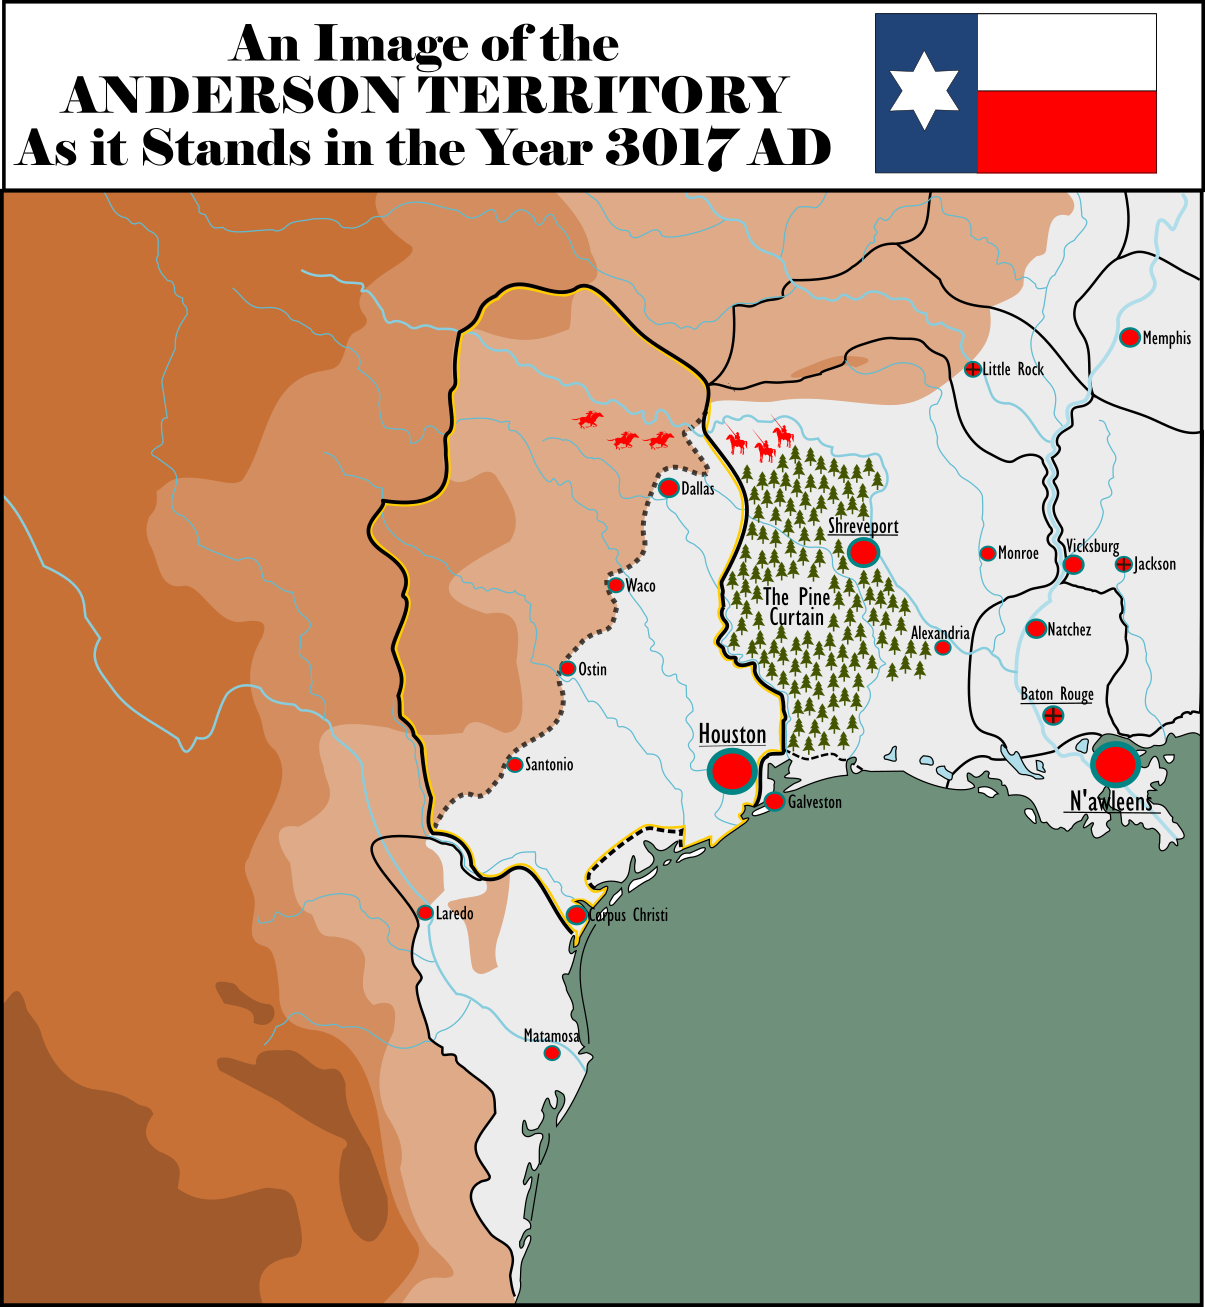 _medam__the_anderson_territory_by_gottfreyundroy-dbxngcx.png